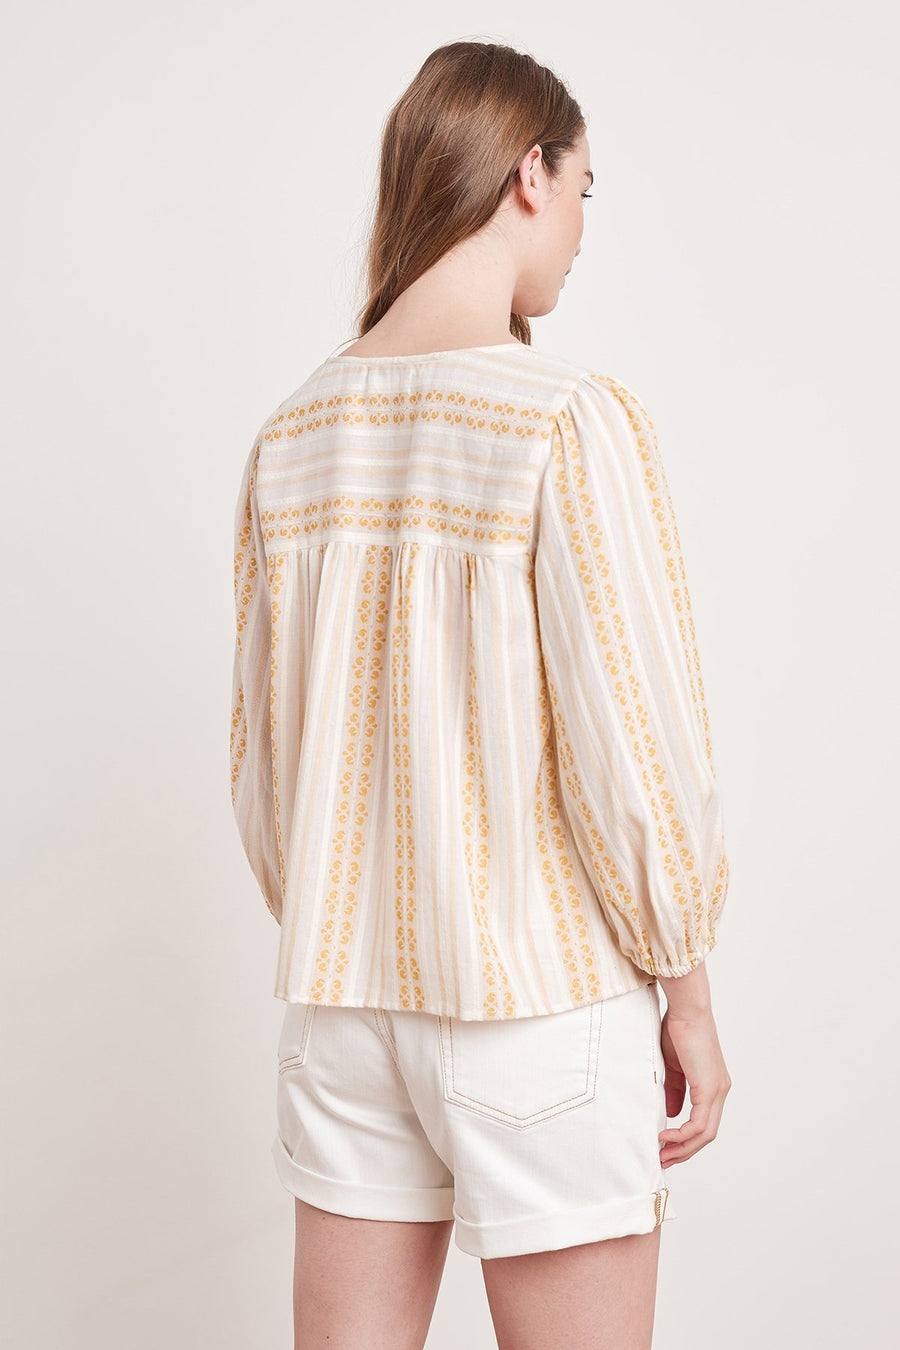 WINTER - STRIPE JACQUARD V NECK TOP